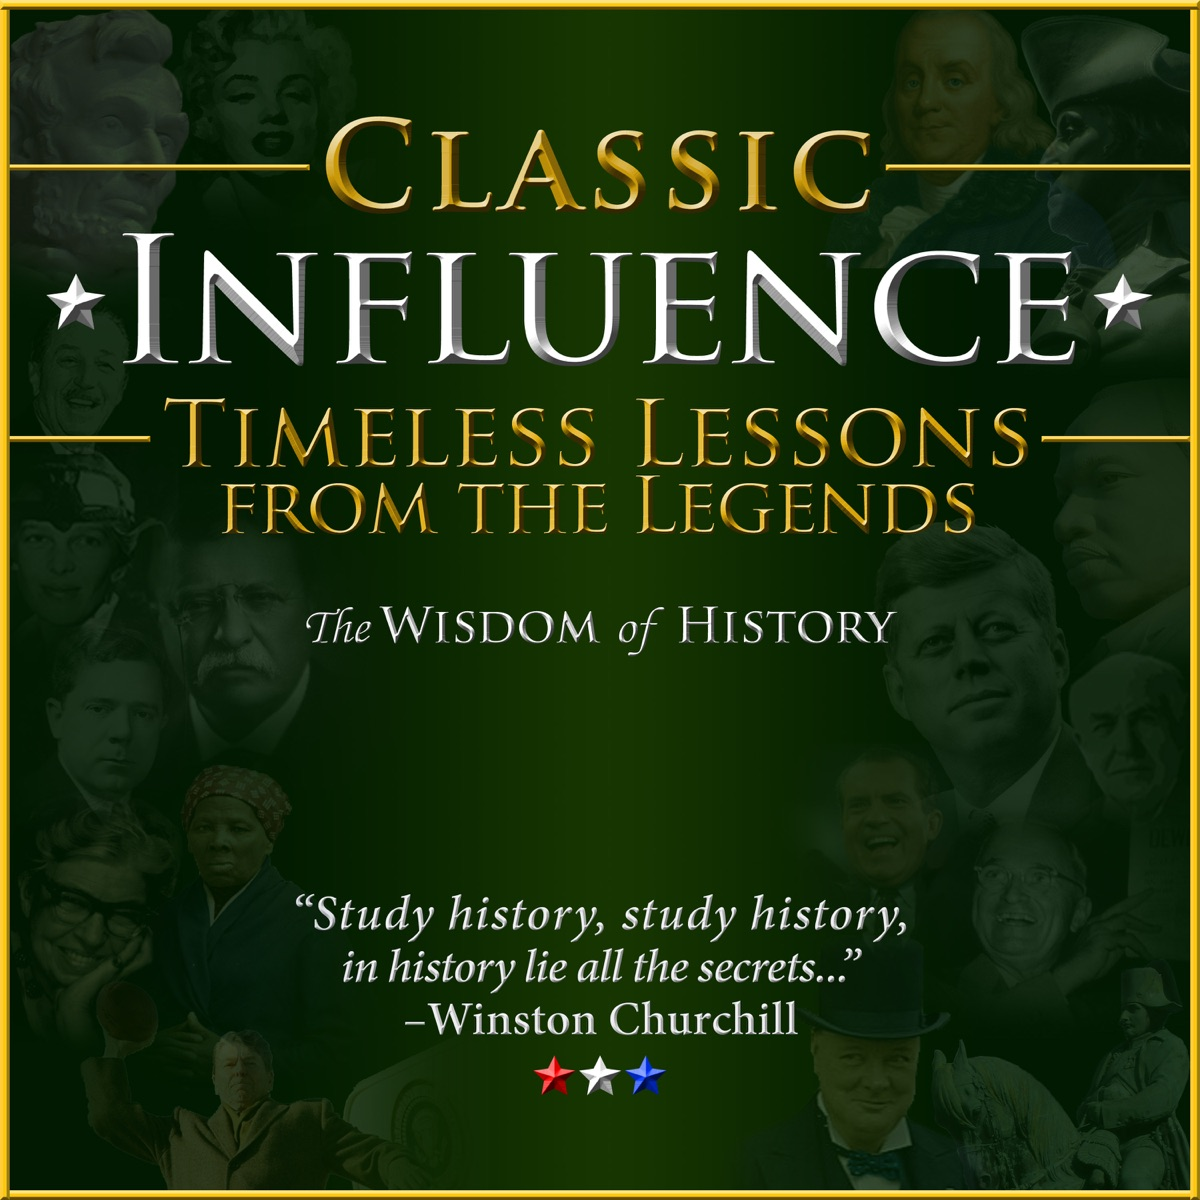 Classic Influence: Timeless Lessons from the Legends